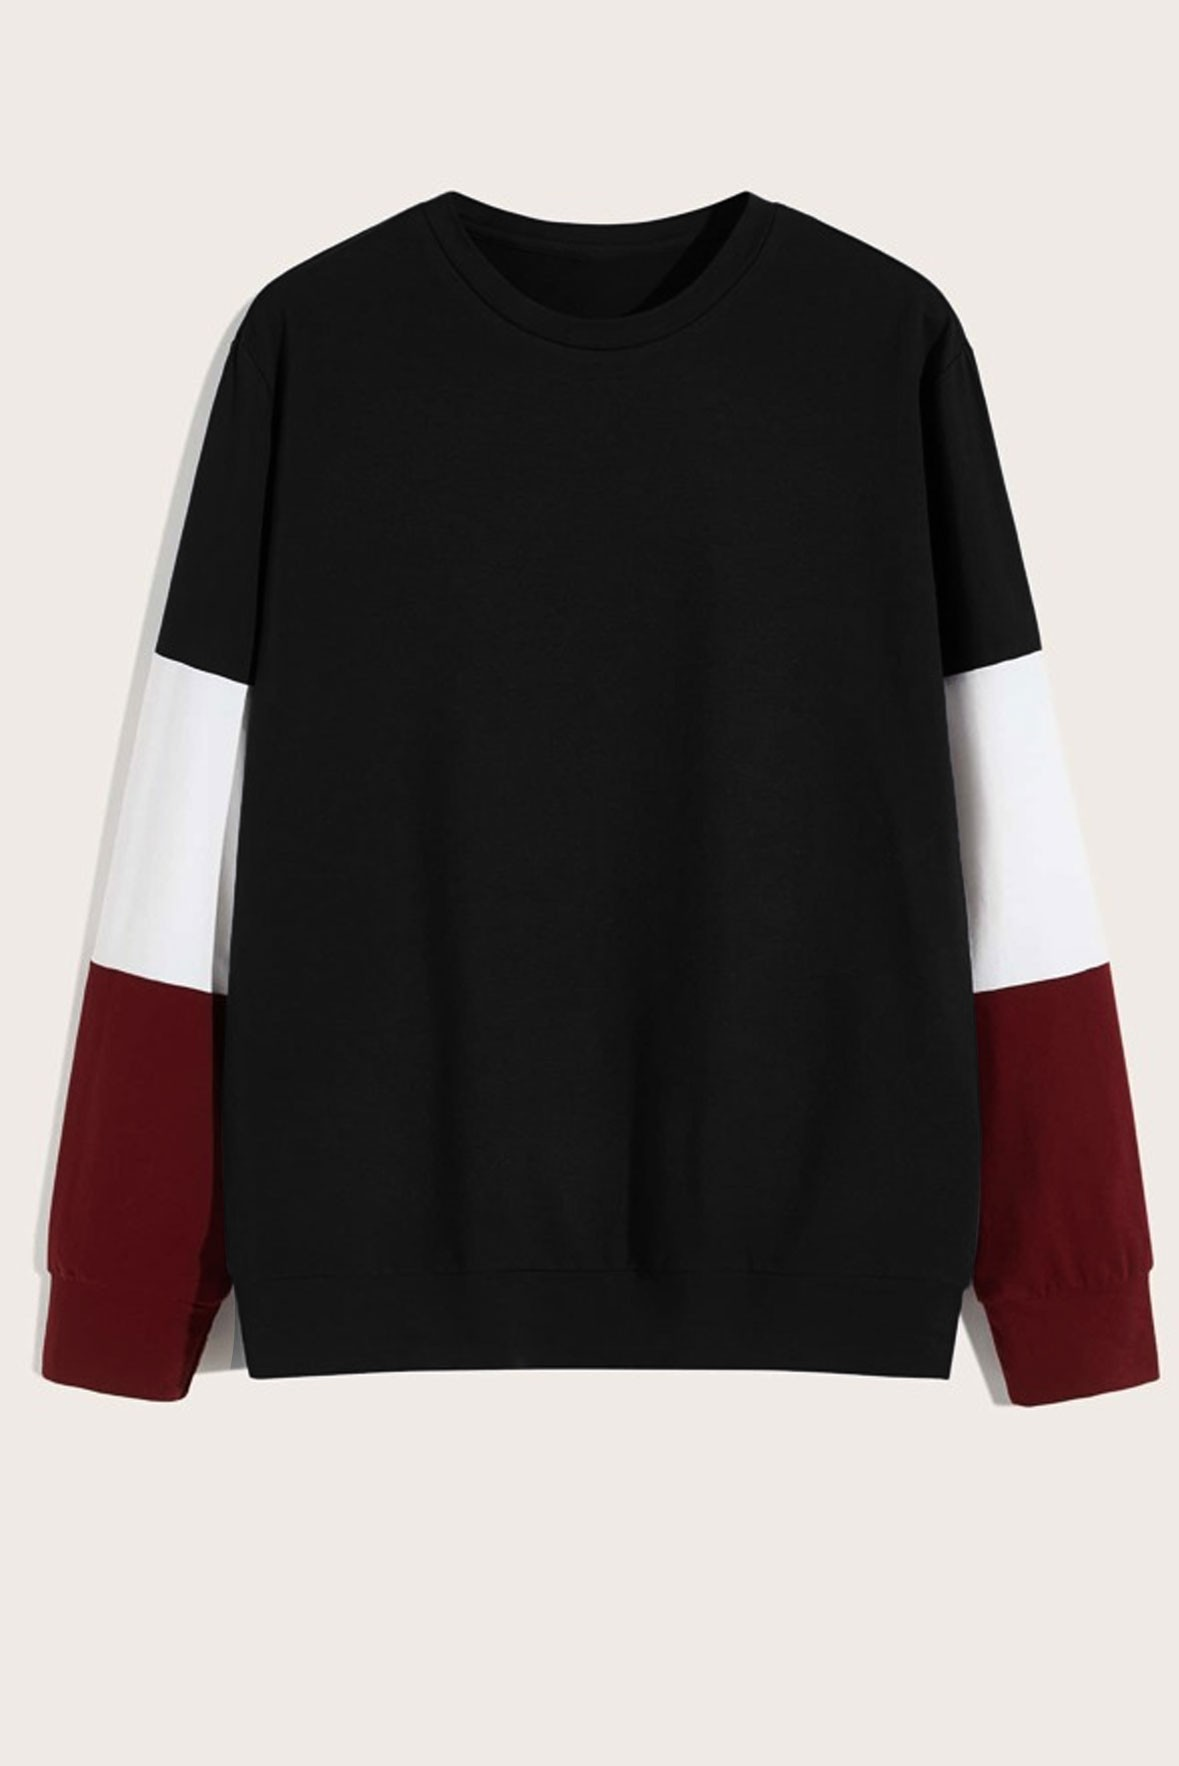 Black white and marsala Sweatshirt